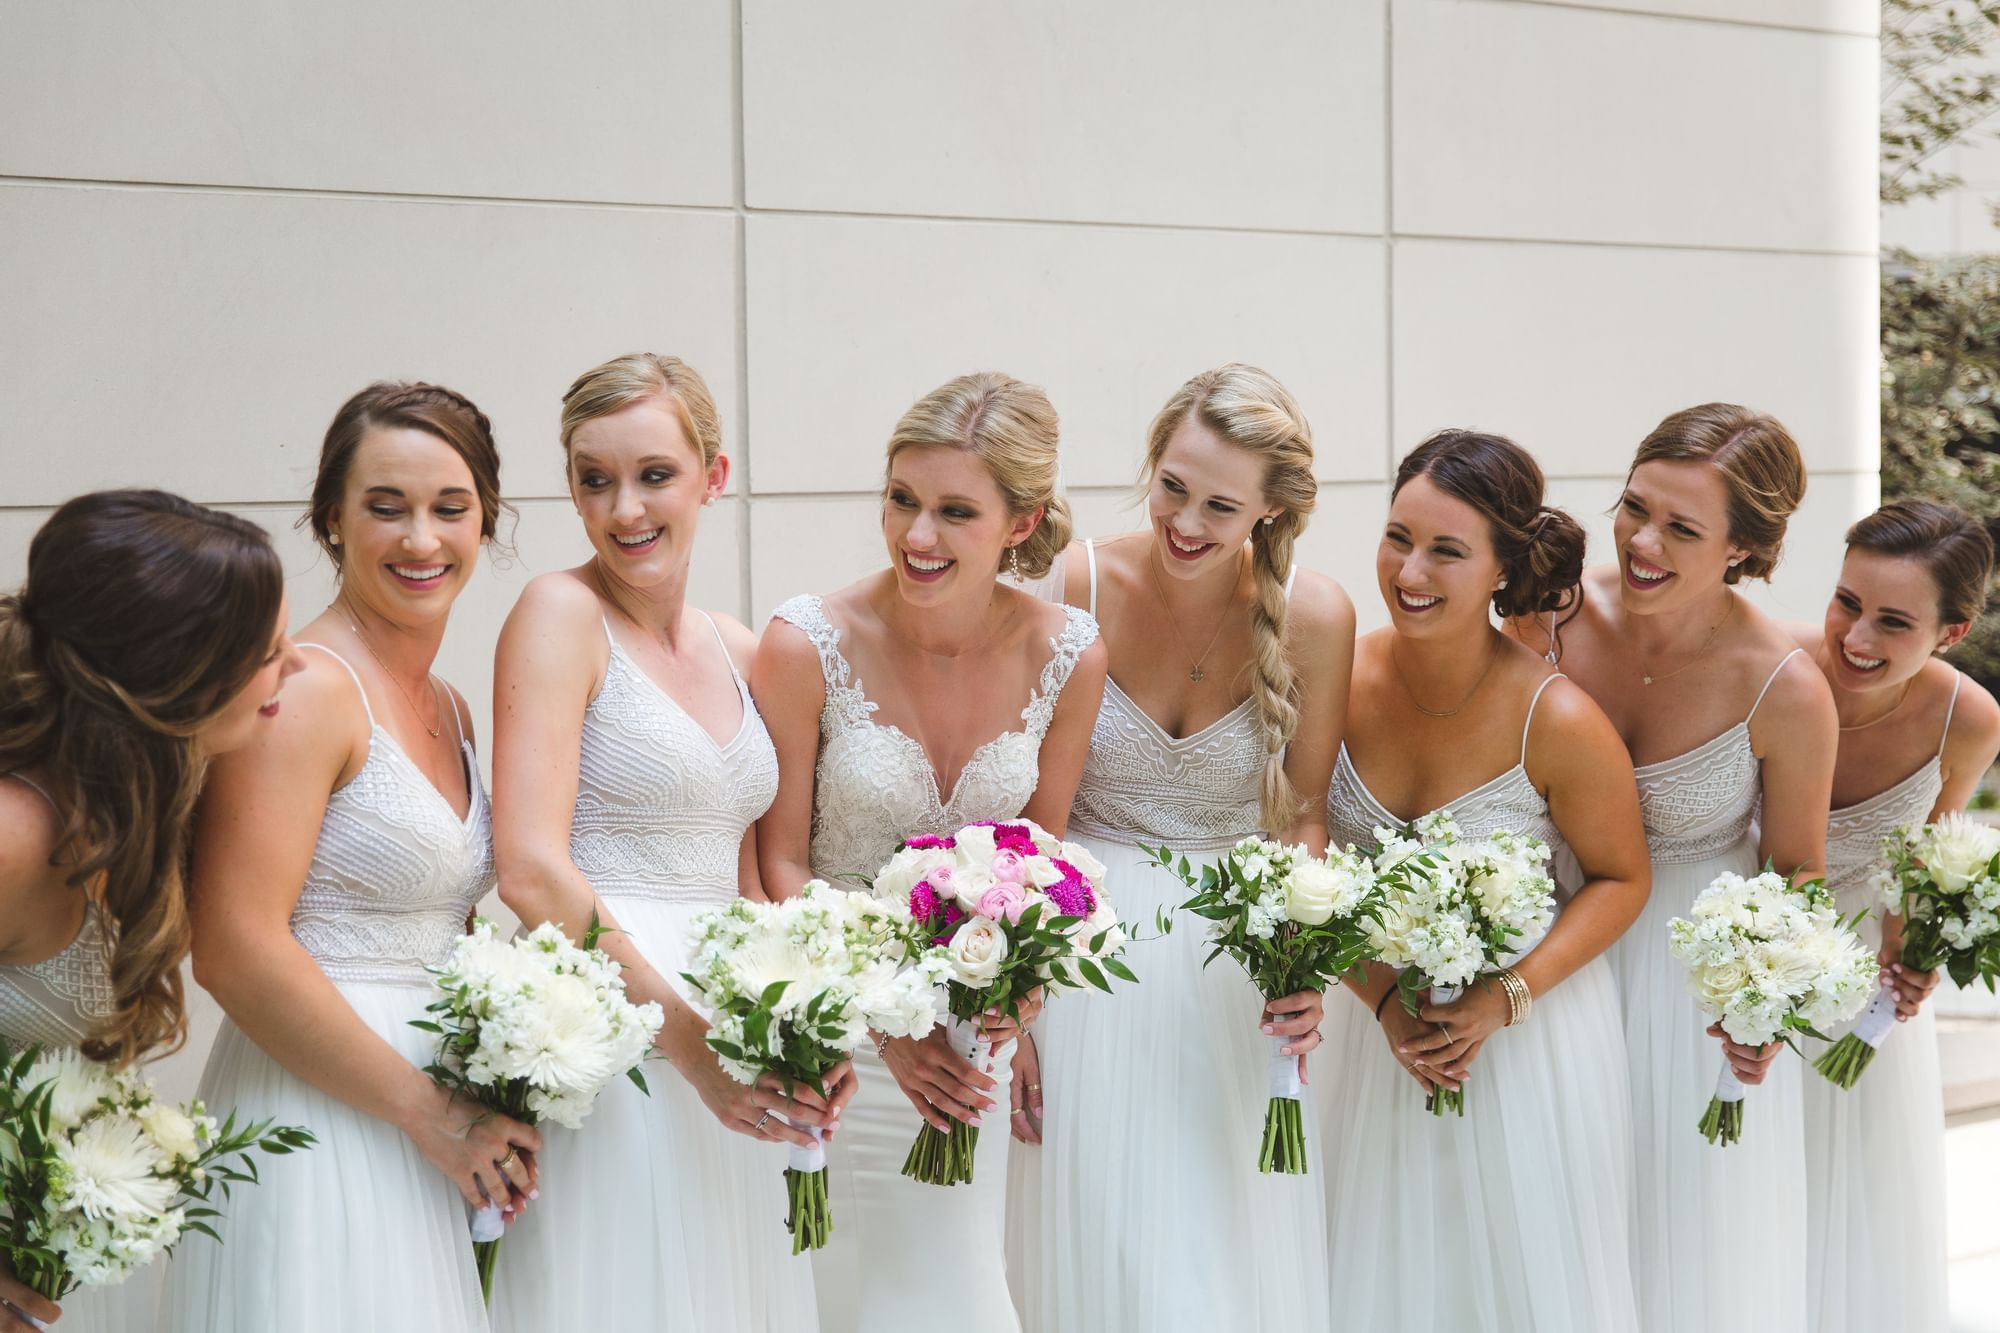 a group of brides maids holding flowers